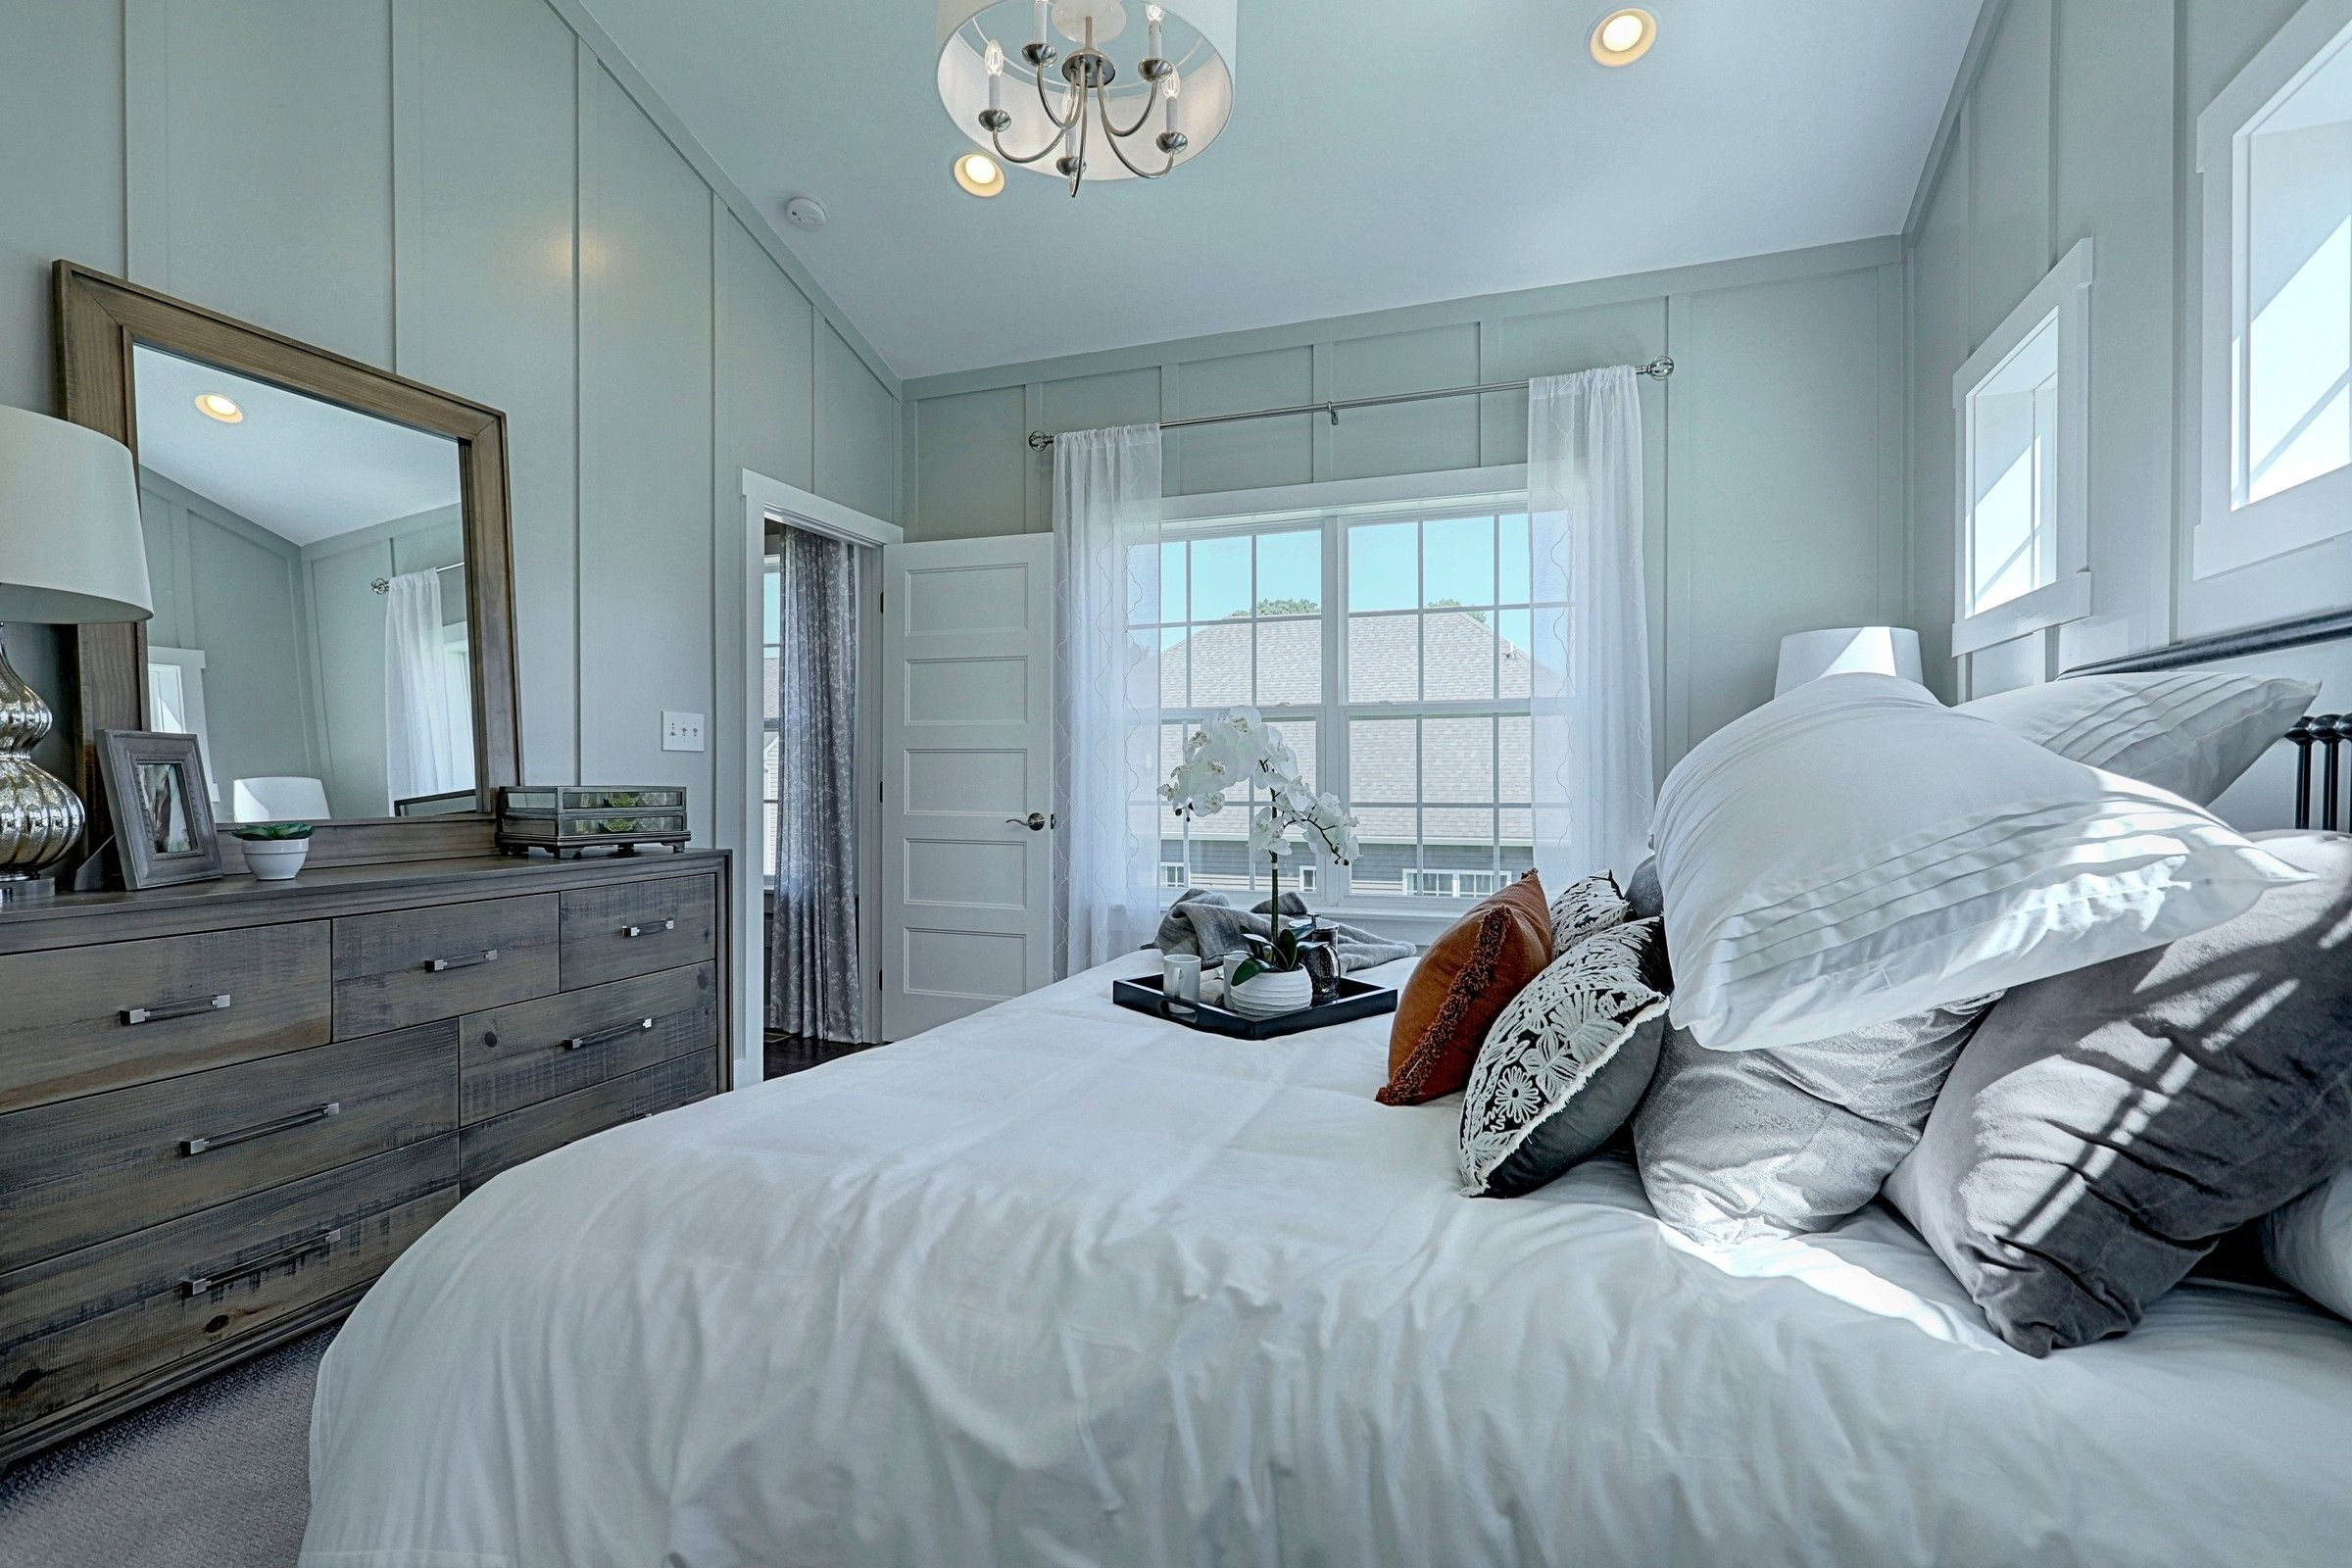 Bedroom featured in the Andrews Vintage By Keystone Custom Homes in York, PA